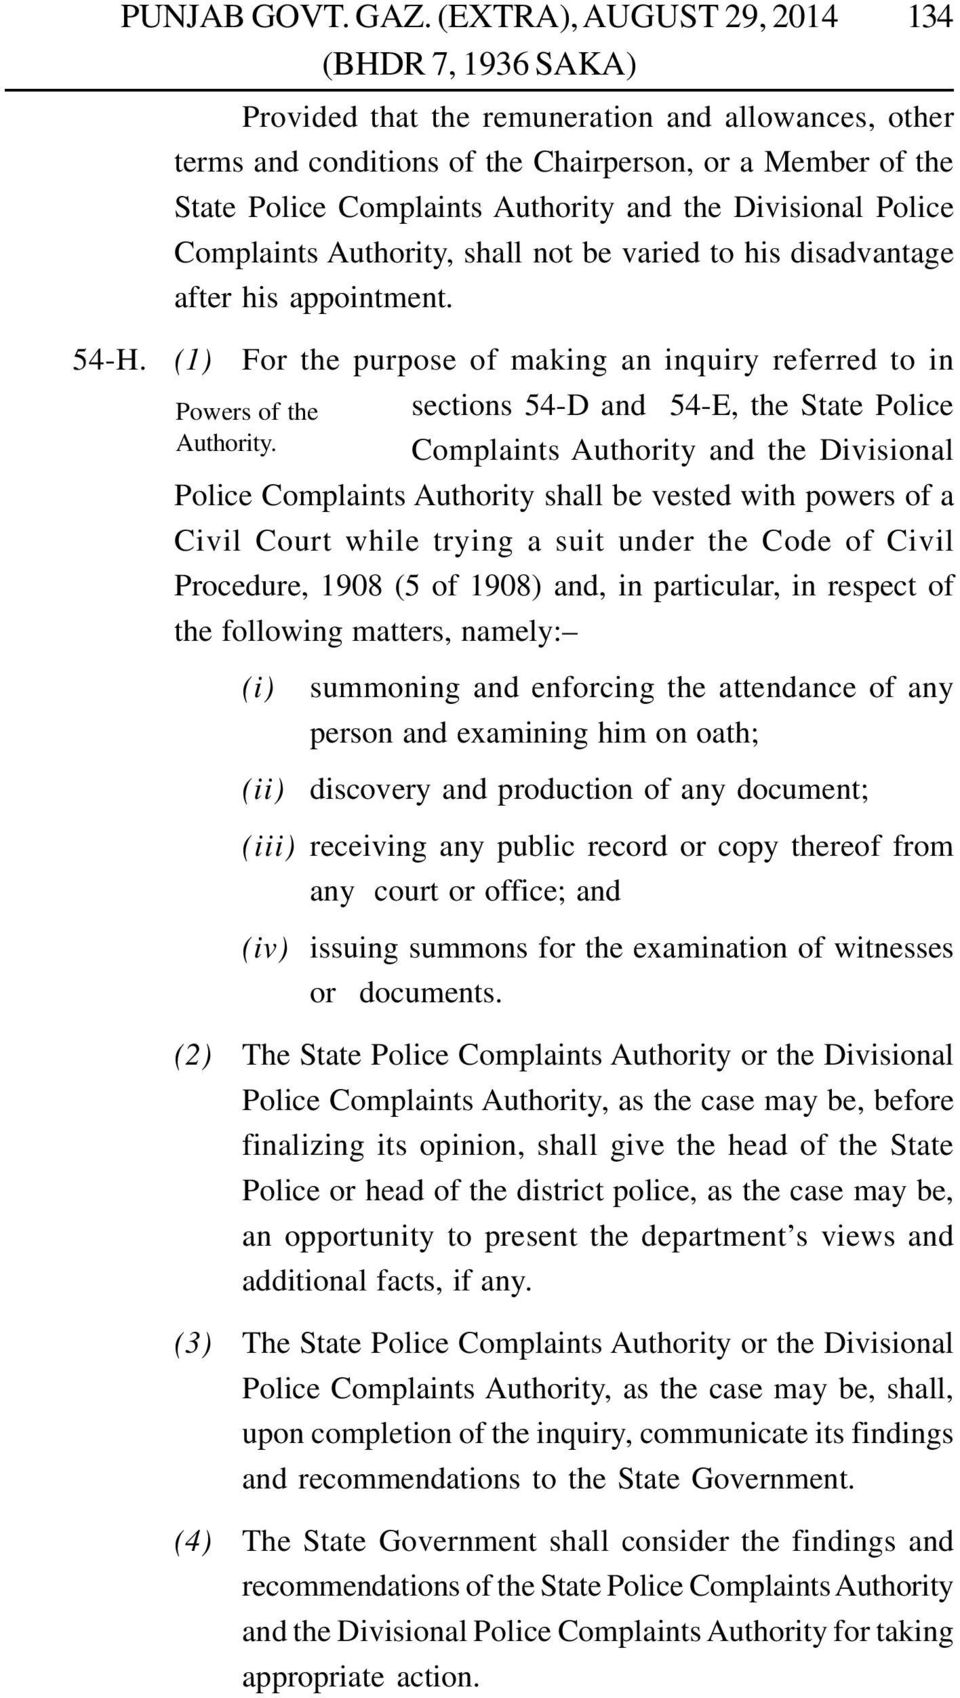 sections 54-D and 54-E, the State Police Complaints Authority and the Divisional Police Complaints Authority shall be vested with powers of a Civil Court while trying a suit under the Code of Civil